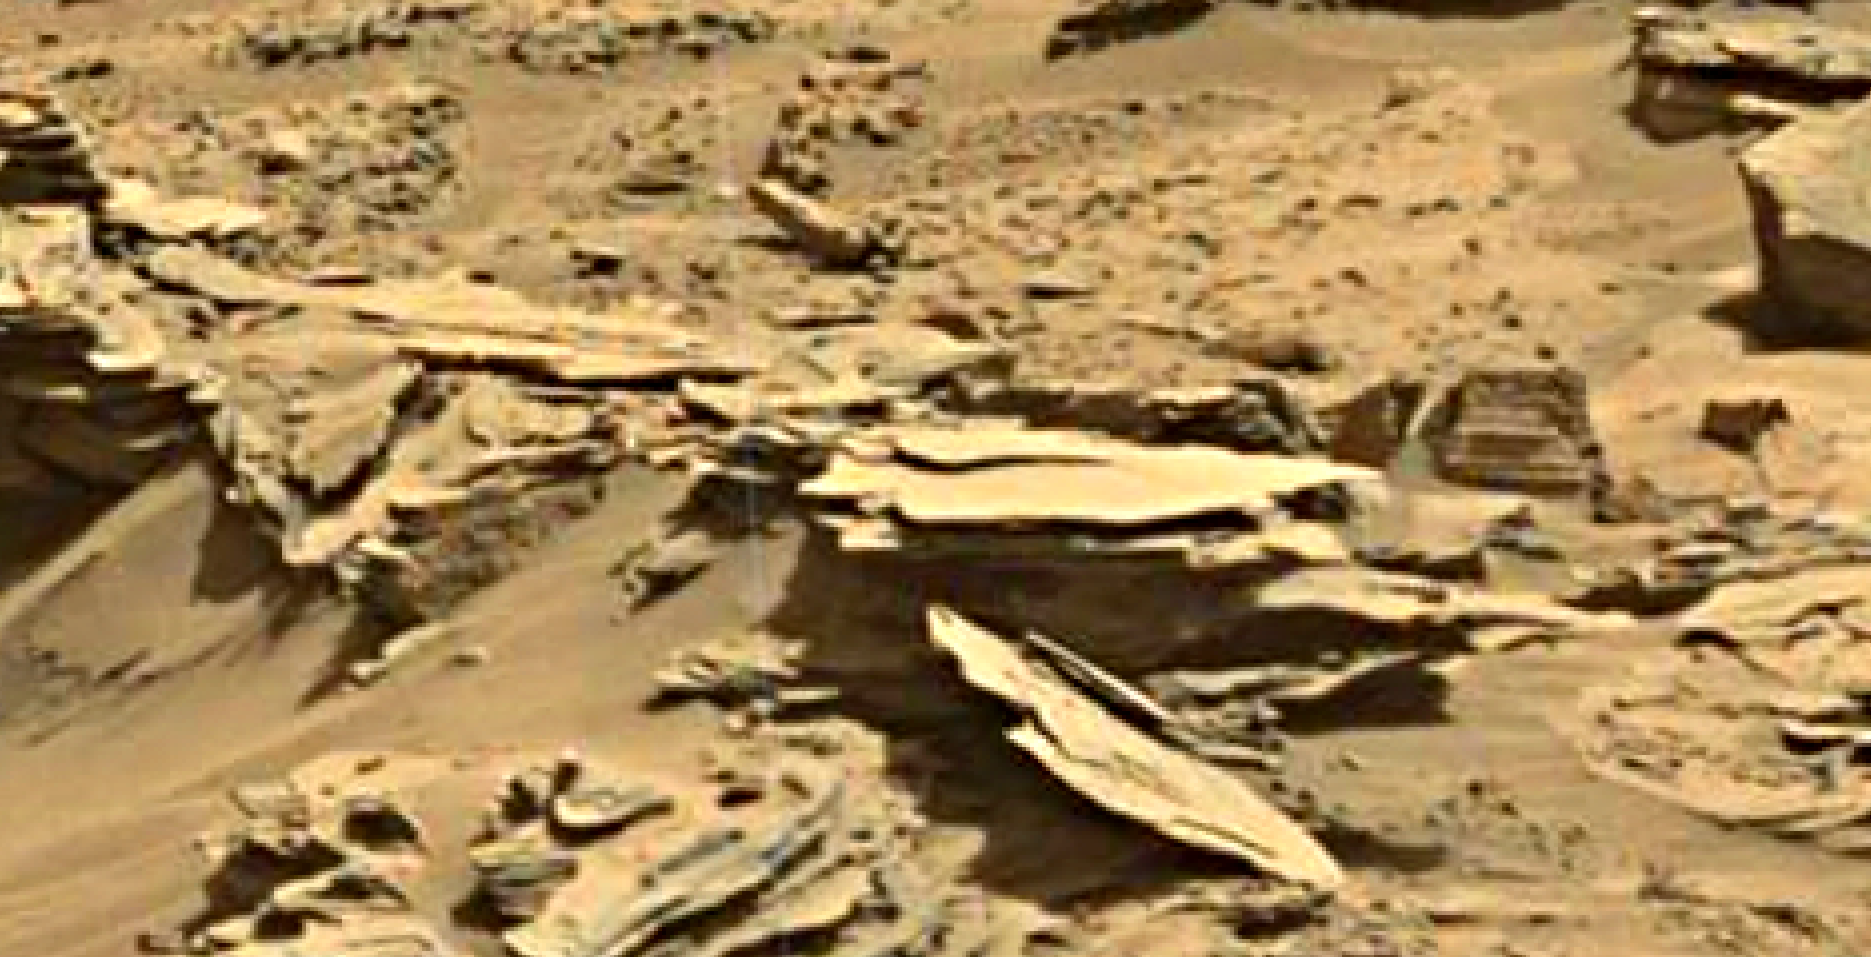 mars sol 1346 anomaly-artifacts 21 was life on mars